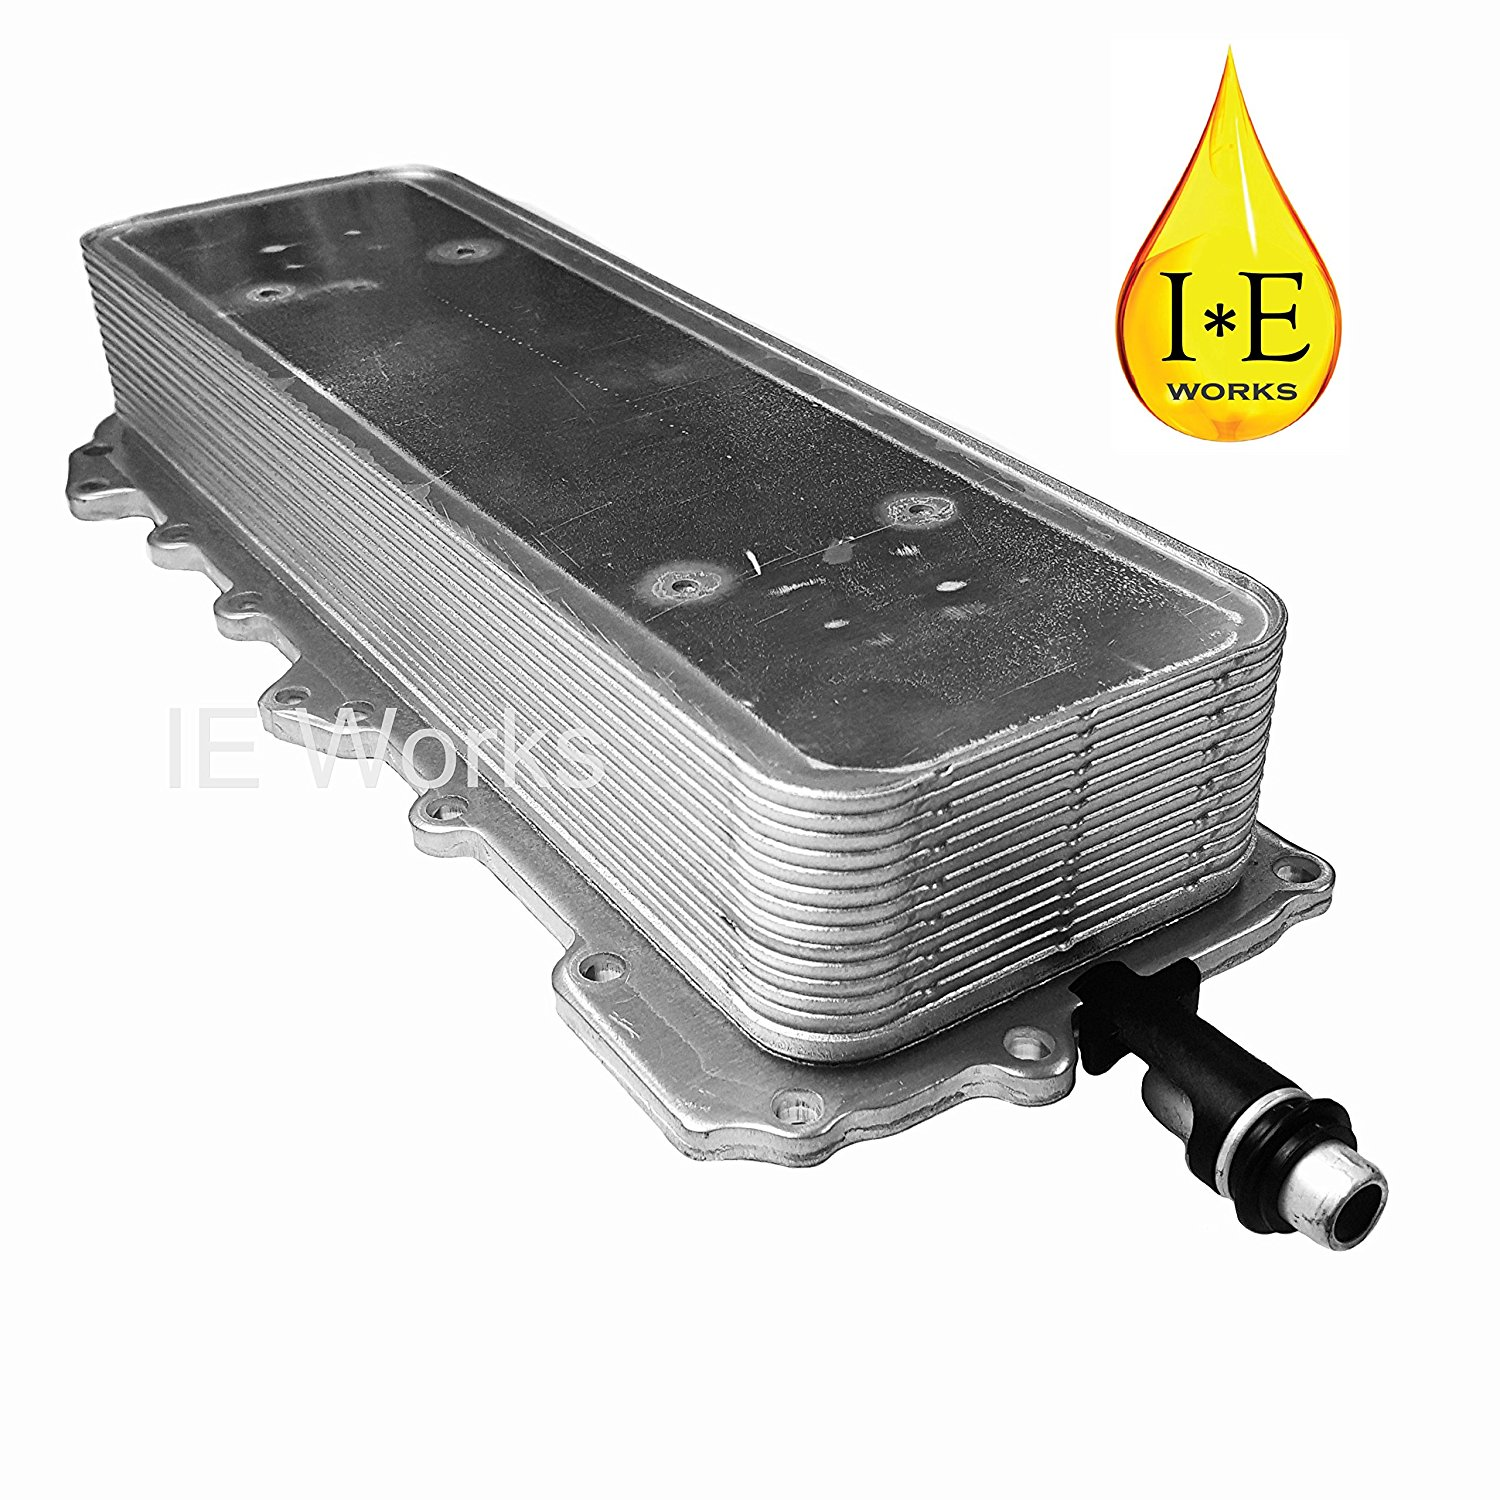 Brand New IE Works Engine Oil Cooler Heat Exchanger with Gasket for Land Rover Range Rover Sport 5.0L LR039821 LR010728 LR010770 2010 2011 2012 2013 2014 2015 2016